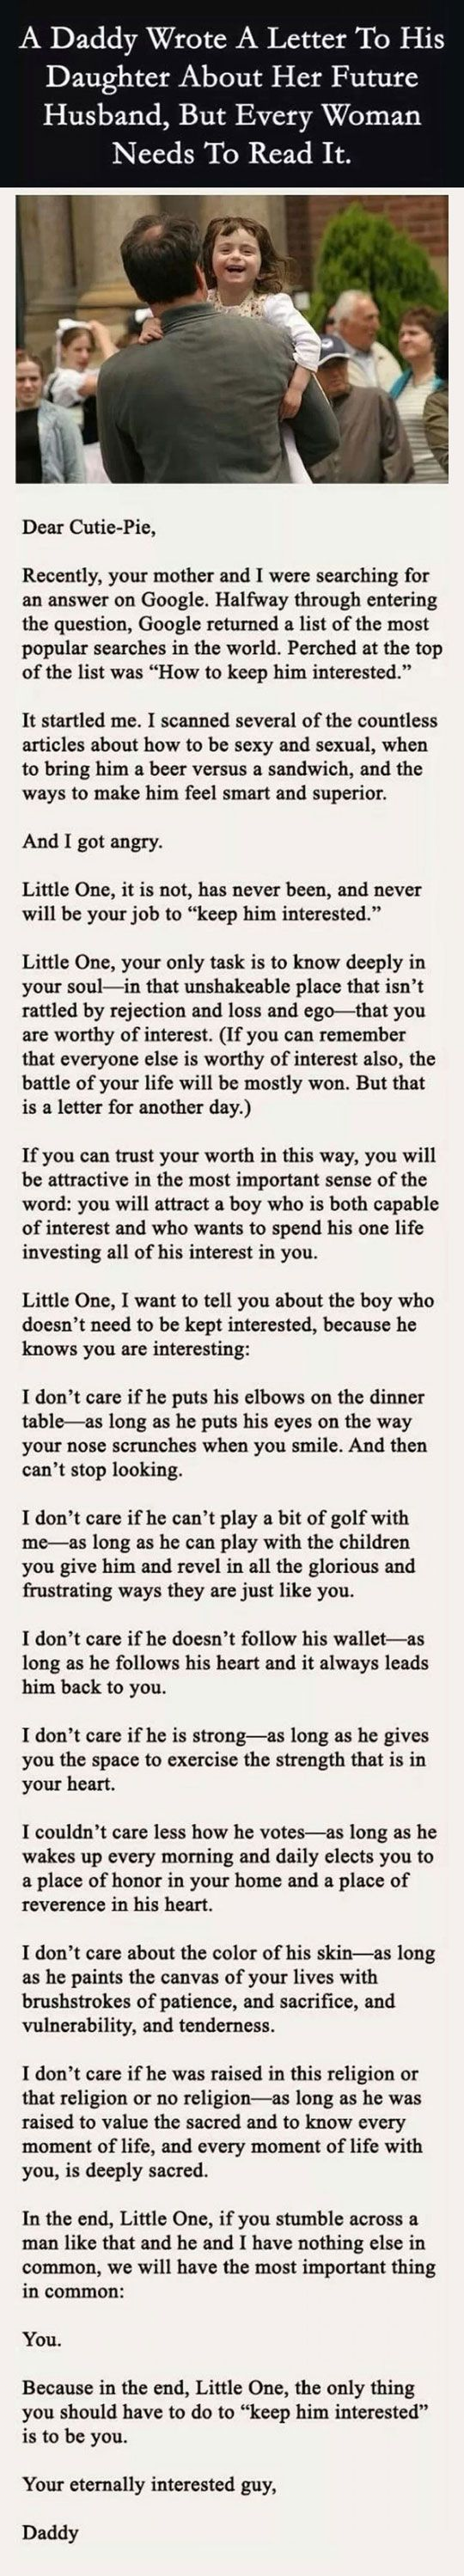 A Daddy Wrote A Letter To His Daughter About Her Future Husband, But Every Woman Needs To Read It<<this is so heart warming